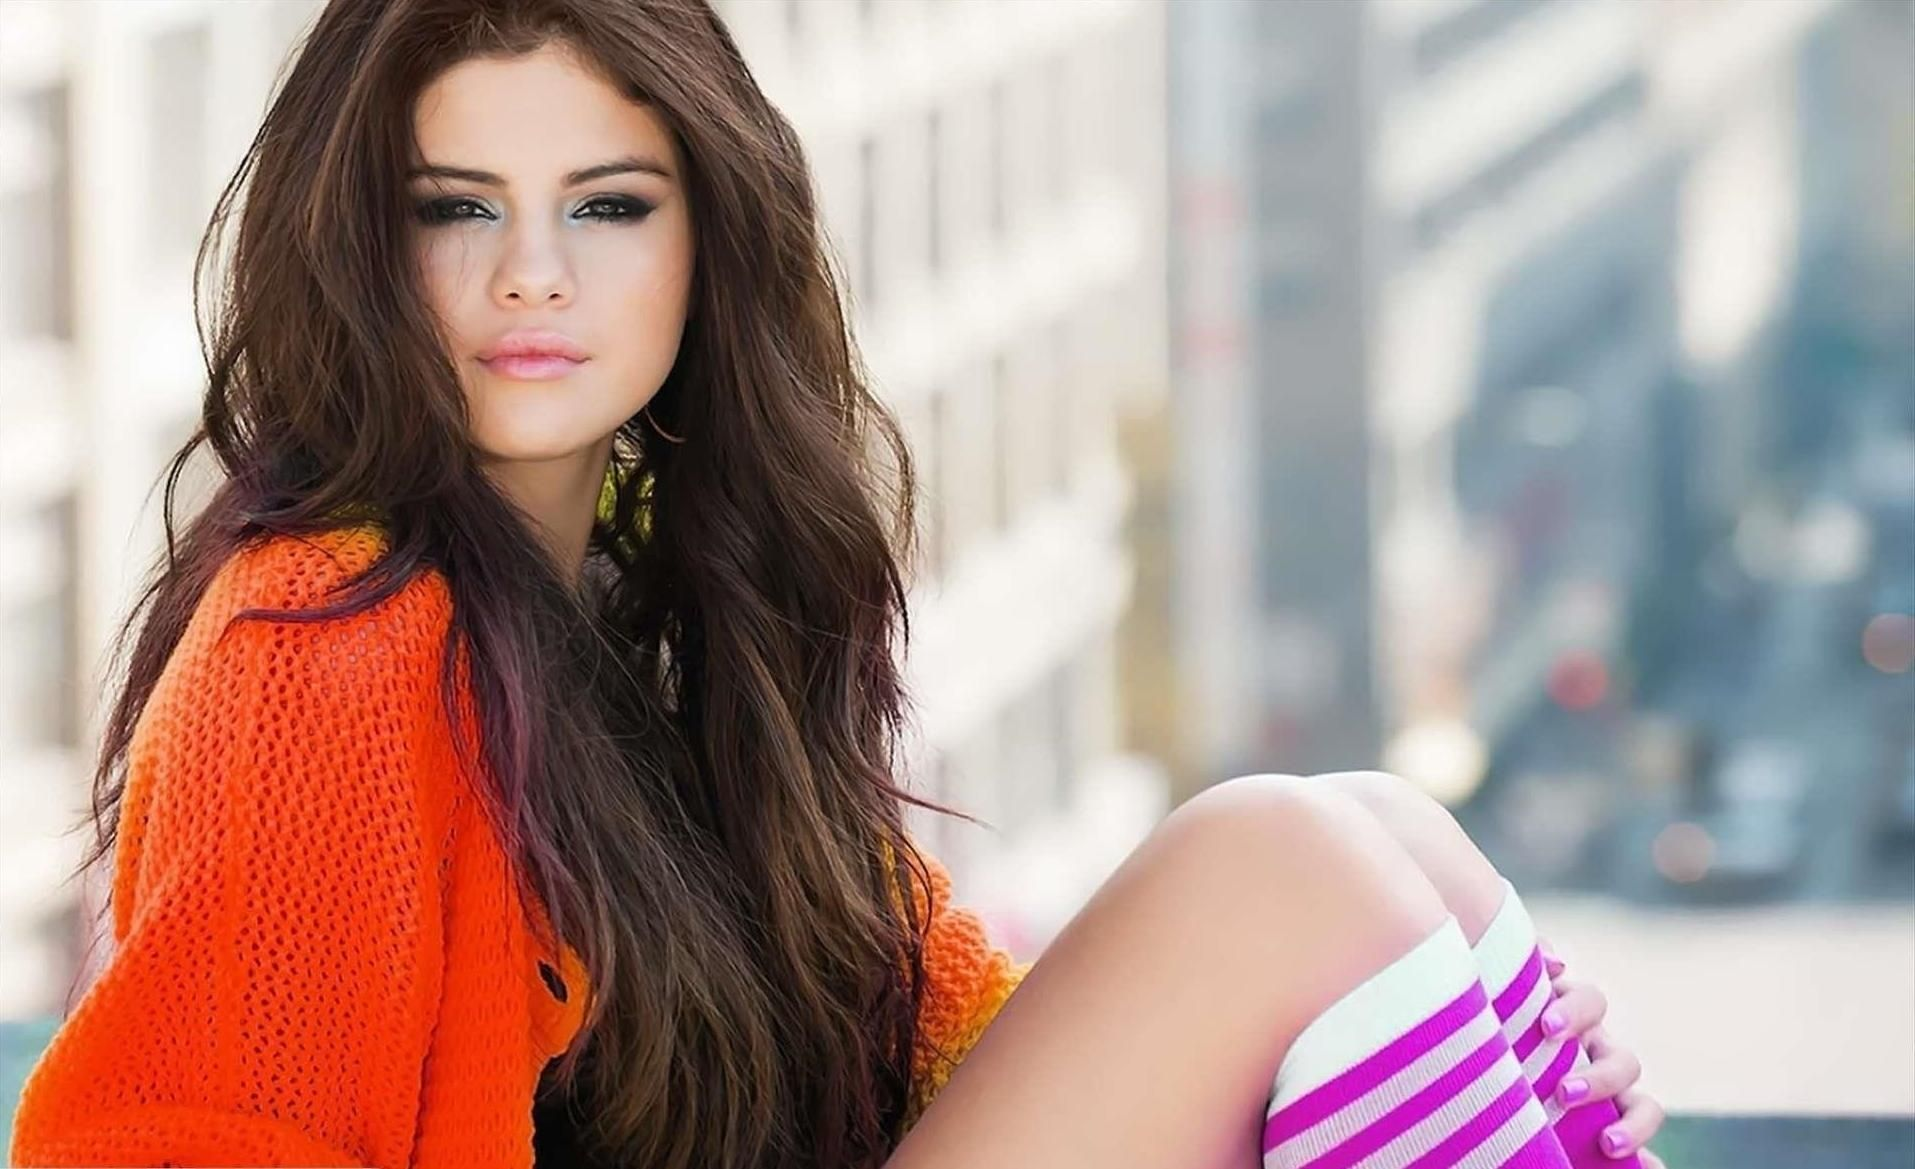 10 New Selena Gomez Hd Wallpapers Full Hd 1080p For Pc Background